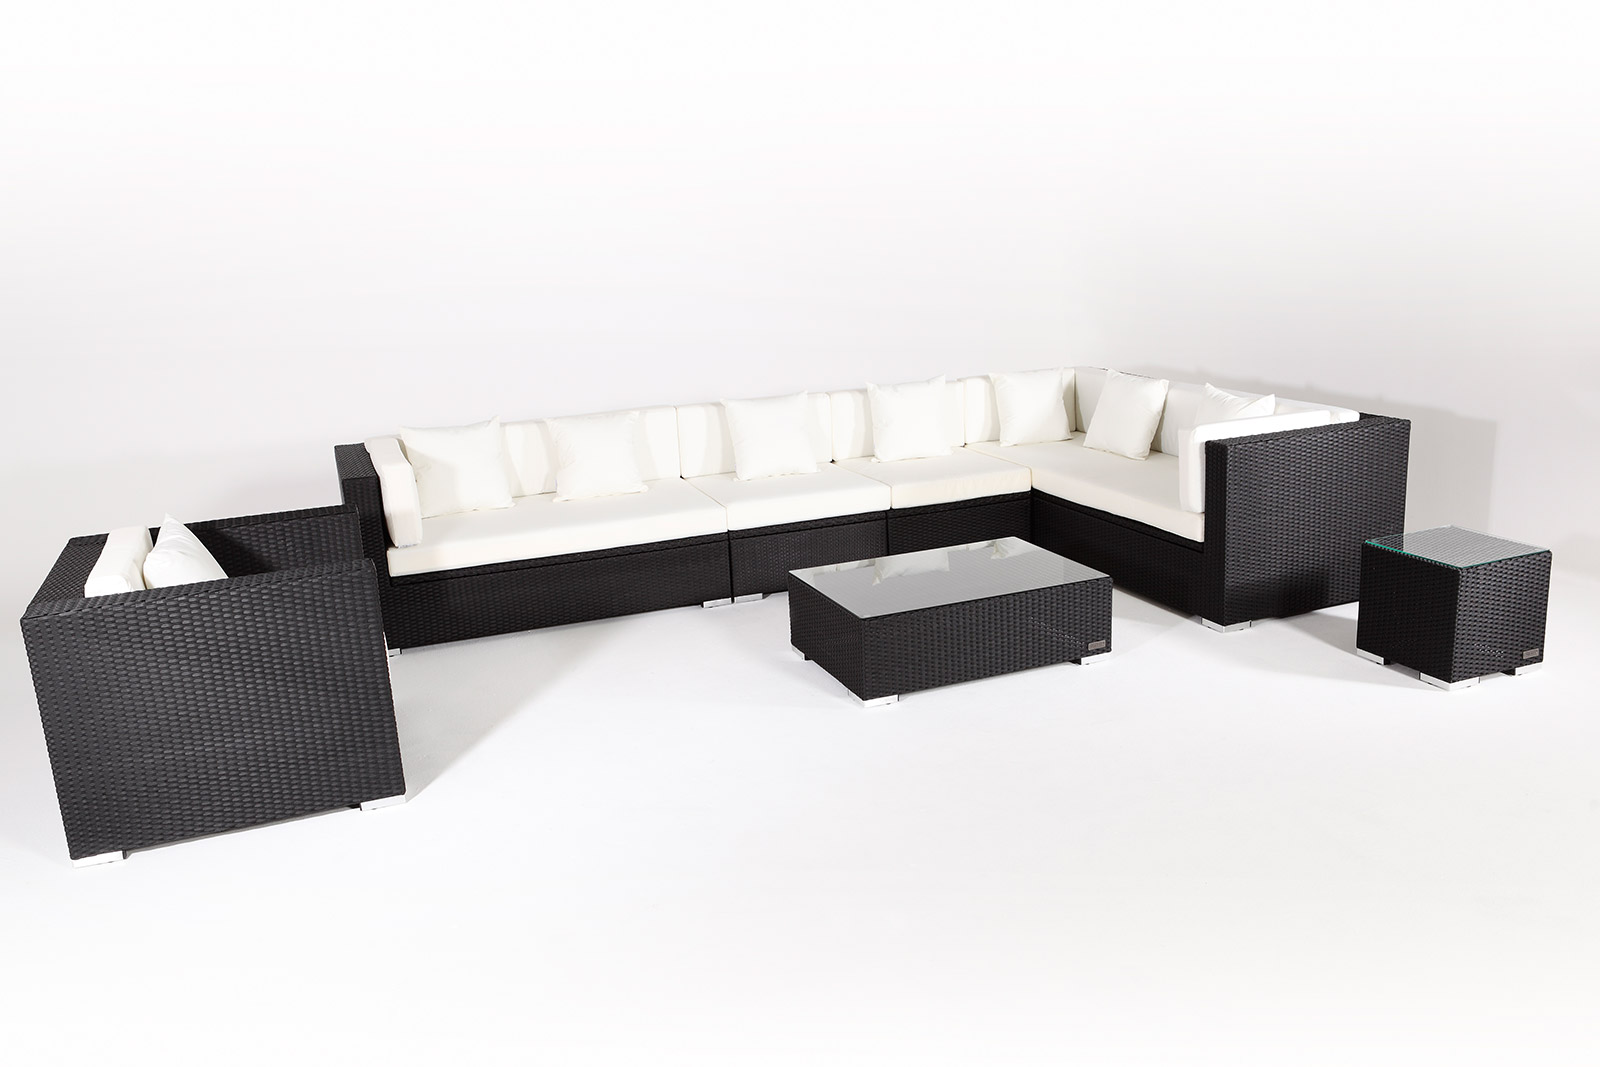 outflexx sitzgruppe xxl aus polyrattan mit kissenboxfunktion inkl kissen f r 8 pers schwarz. Black Bedroom Furniture Sets. Home Design Ideas